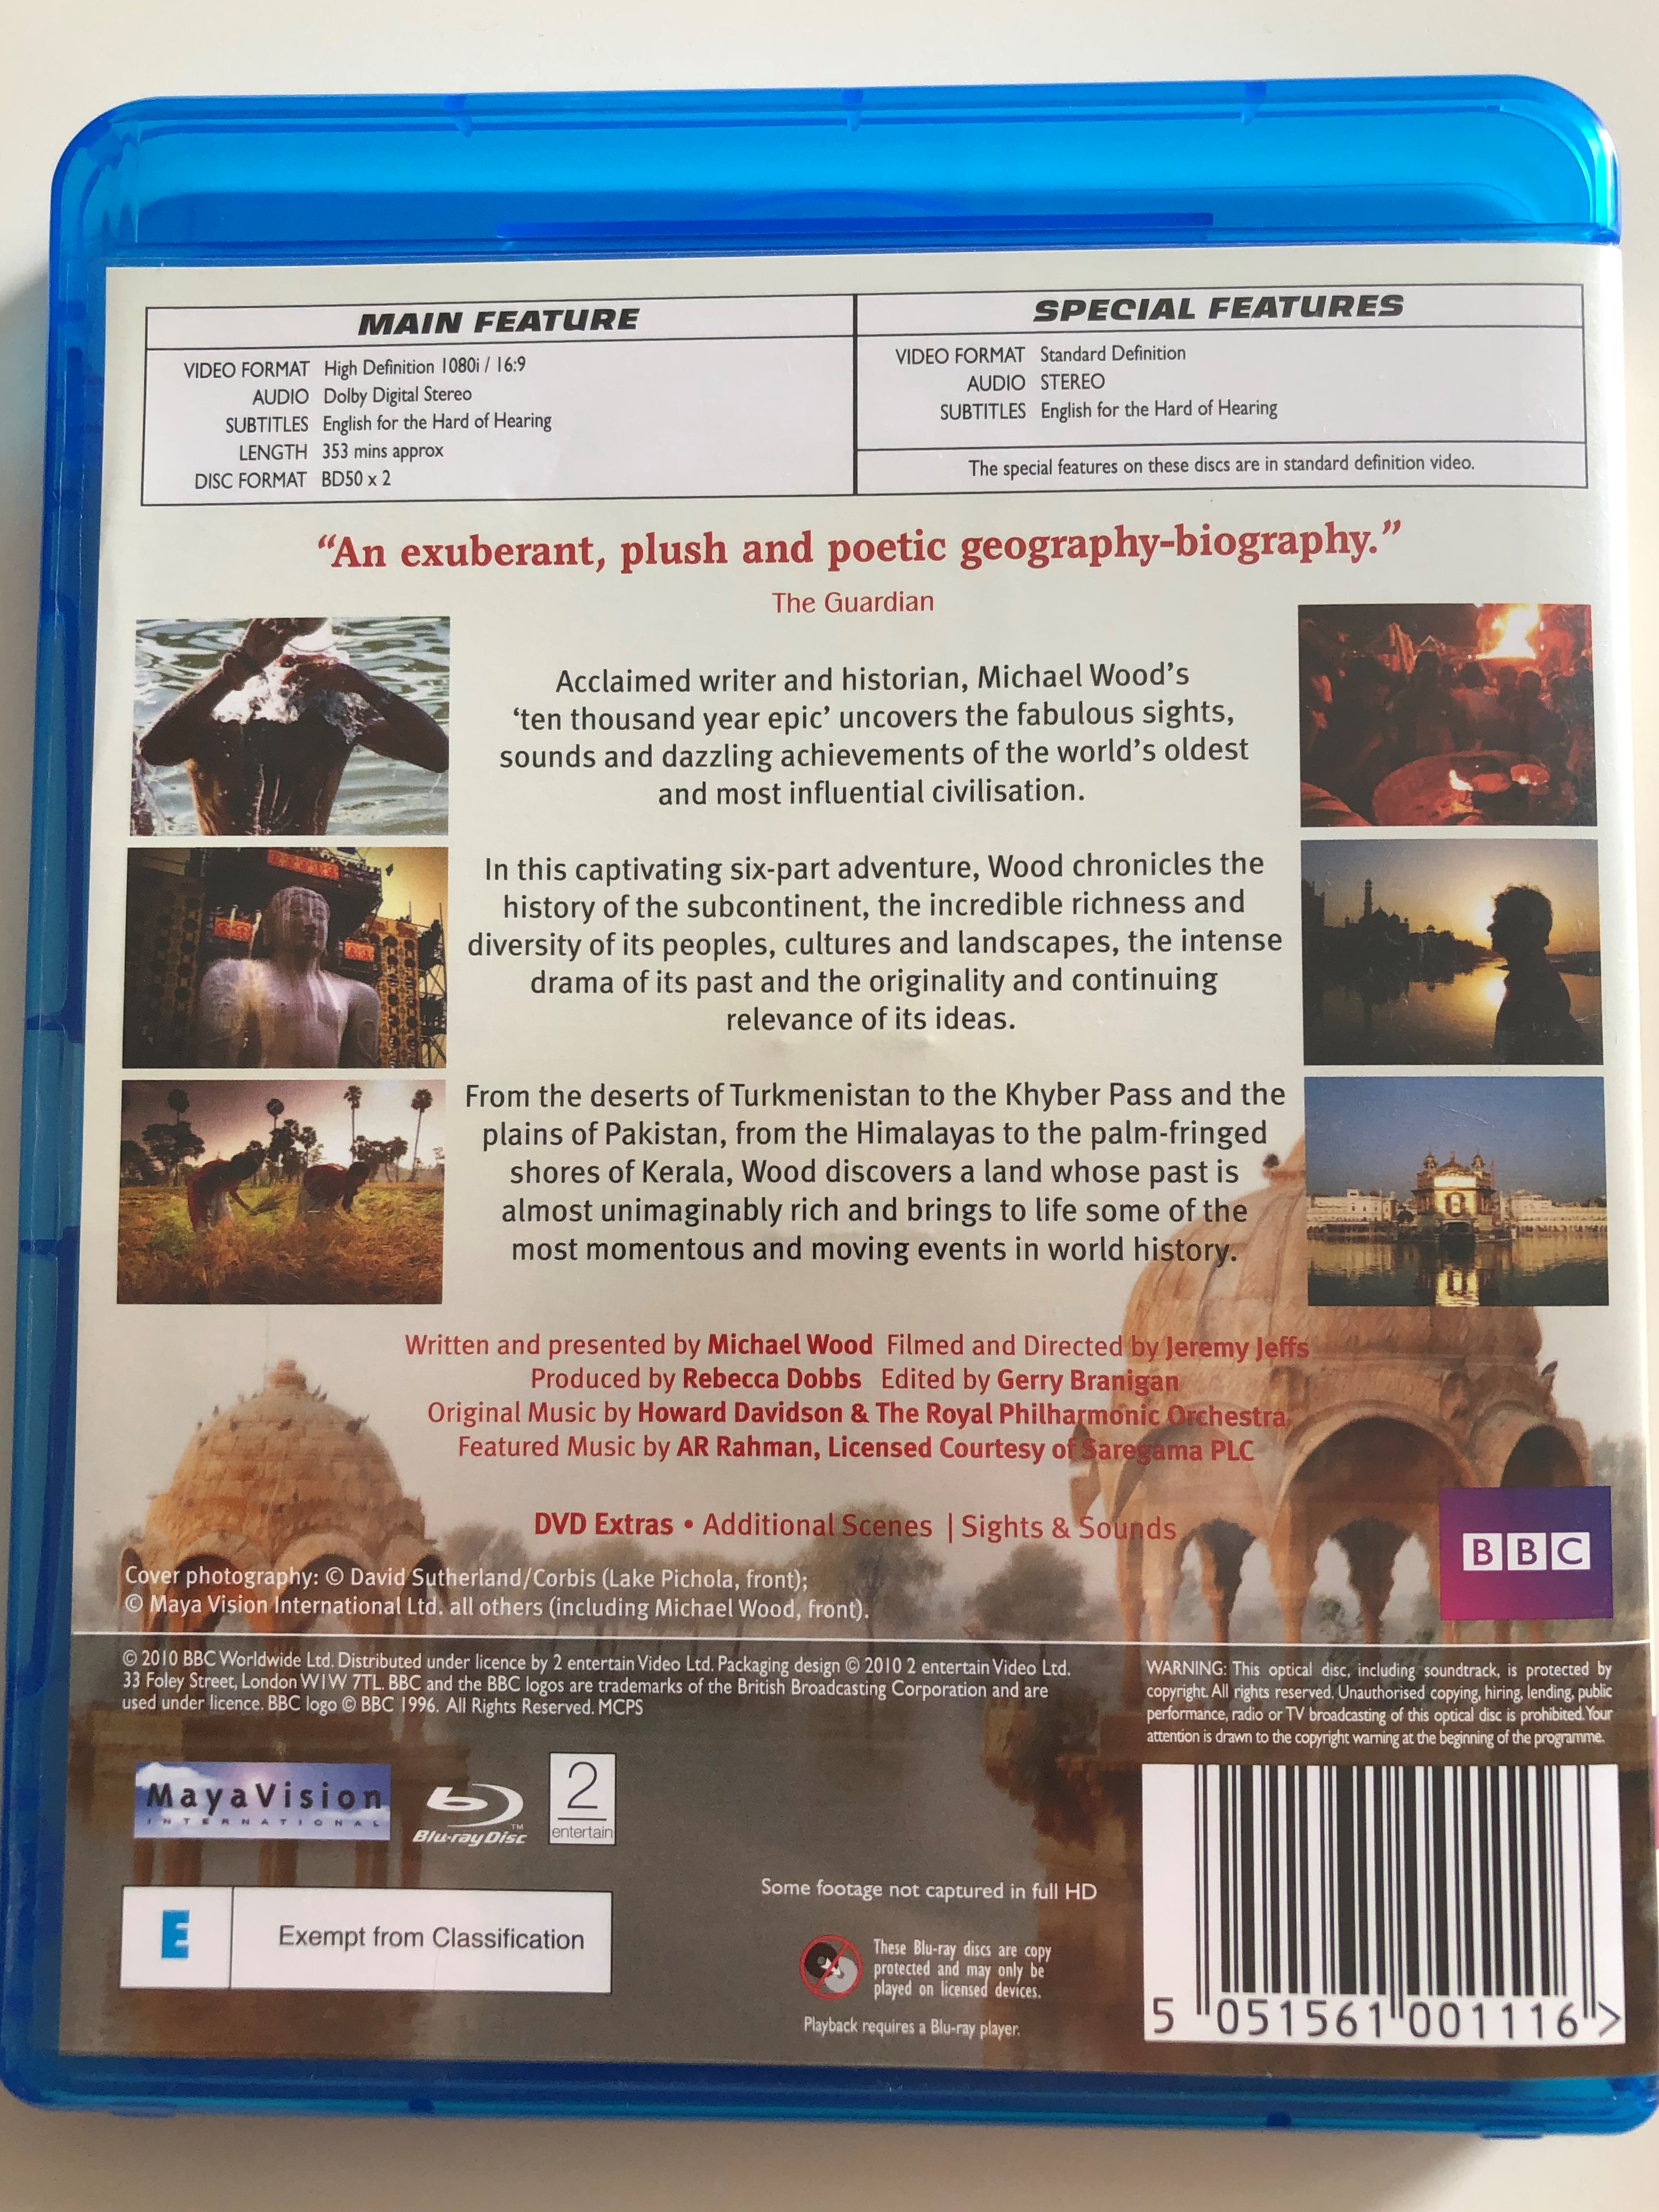 the-story-of-india-with-michael-wood-bluray-a-visual-feast-packed-with-extraordinary-information-bbc-2-disc-set-4-.jpg